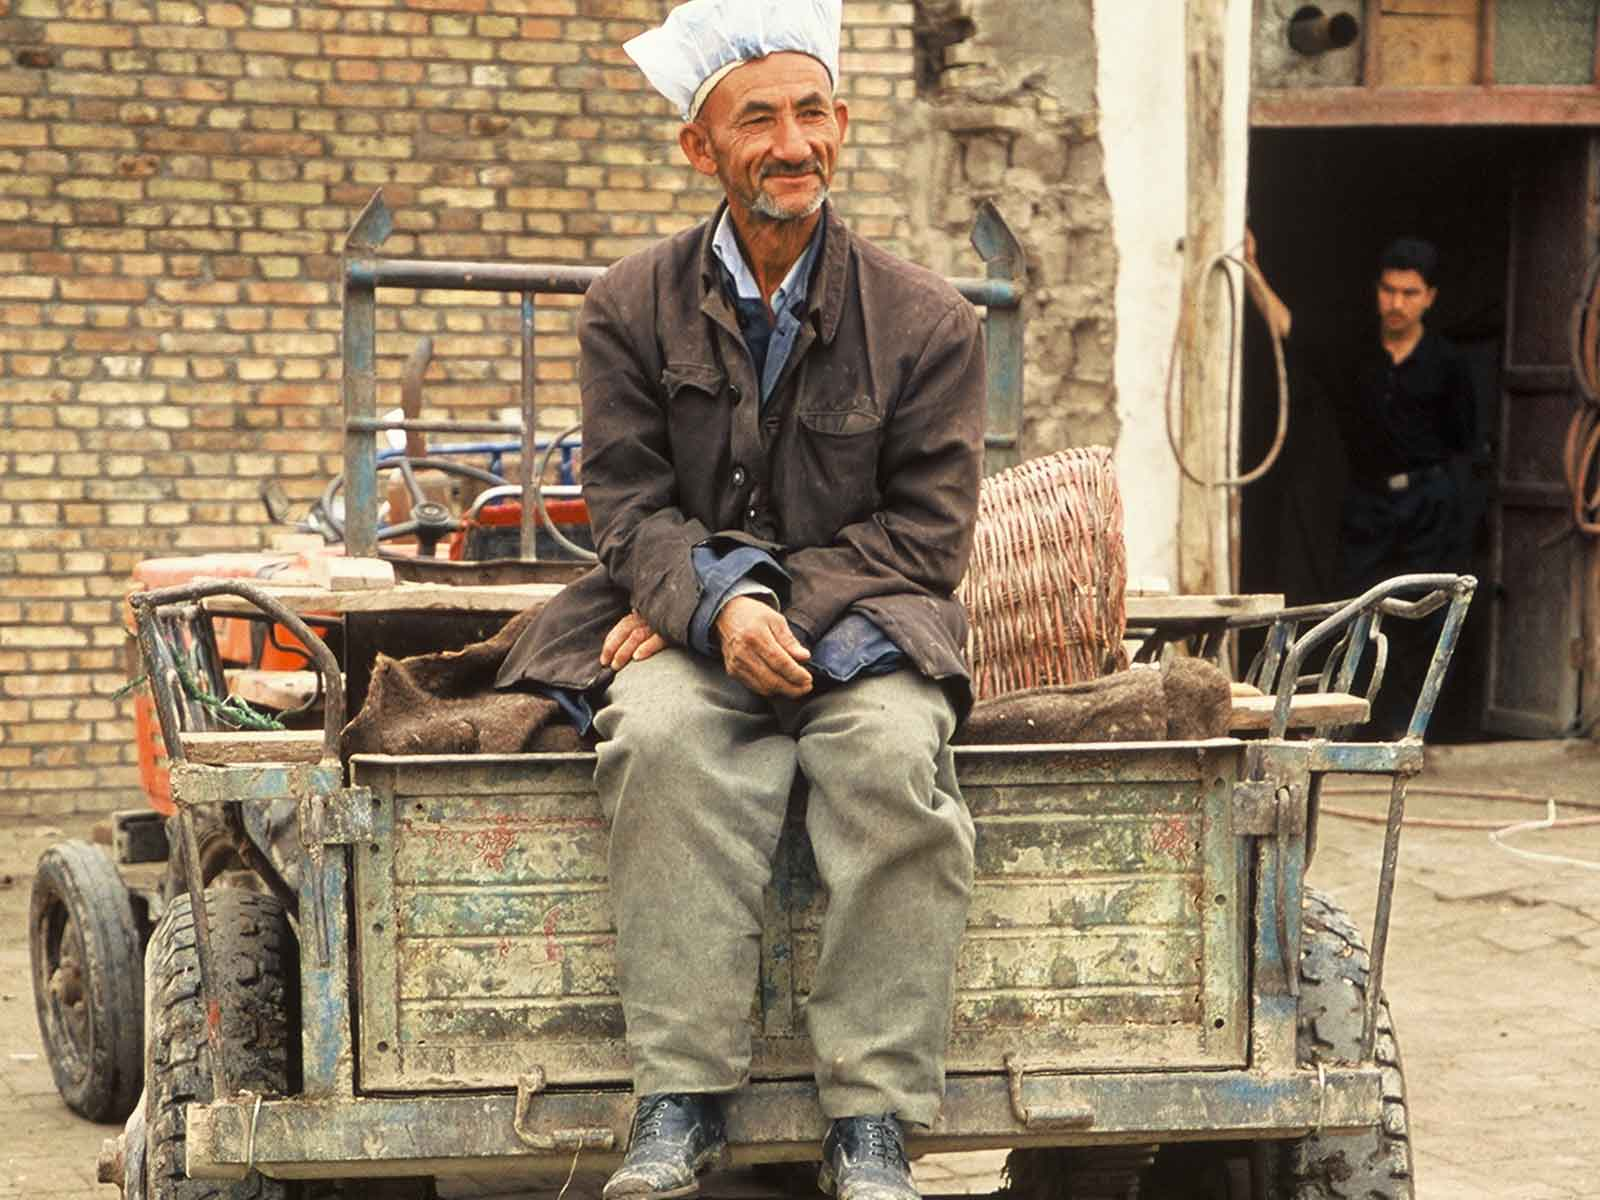 Watermelon seller - Kashgar Sunday Market - Xinjiang China - Silk Road Photo Journal - Steven Andrew Martin - Research